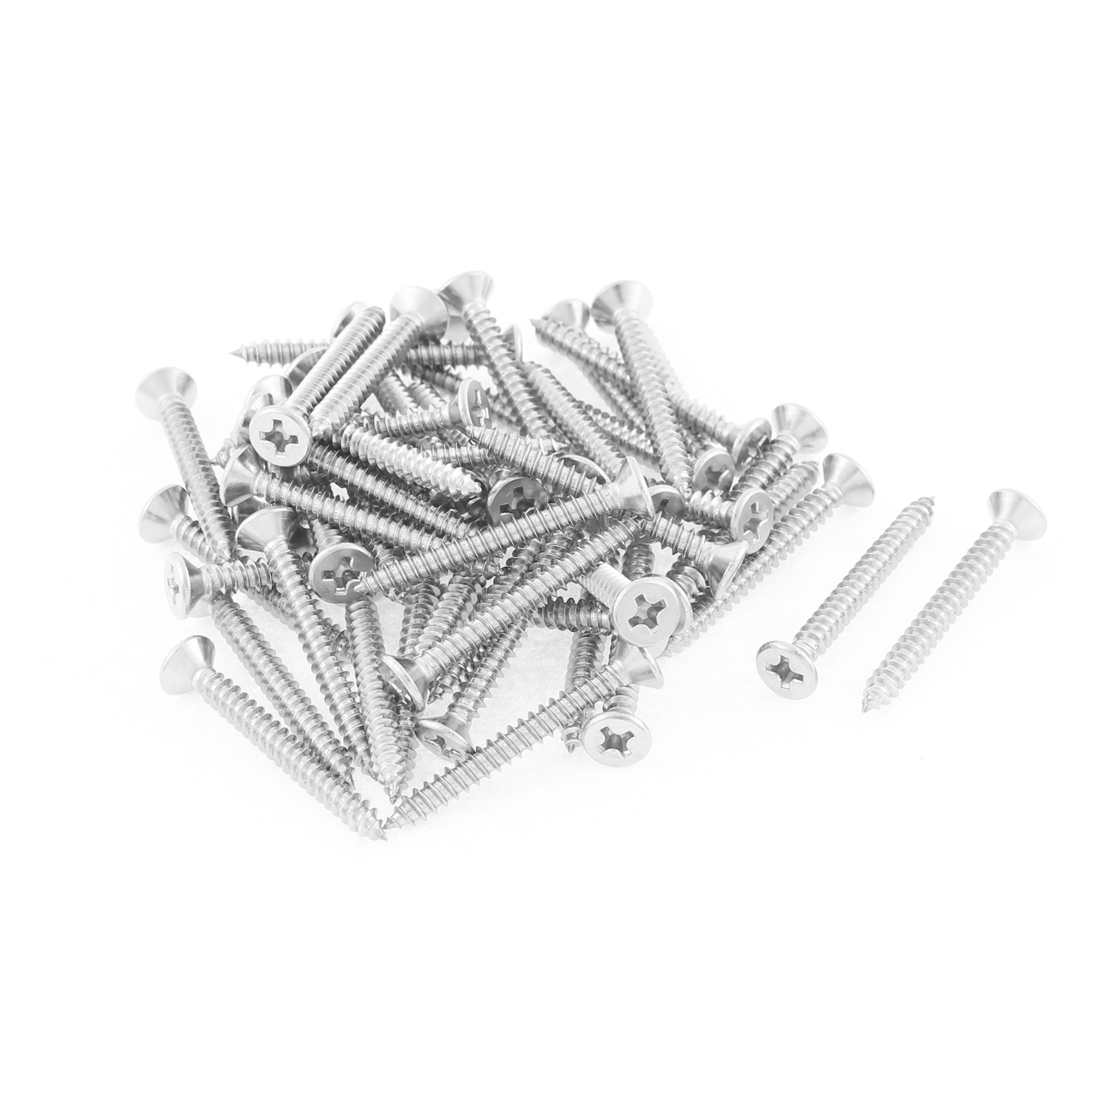 50 Pcs 3.5mmx32mm Stainless Steel Phillips Flat Head Sheet Self Tapping Screws